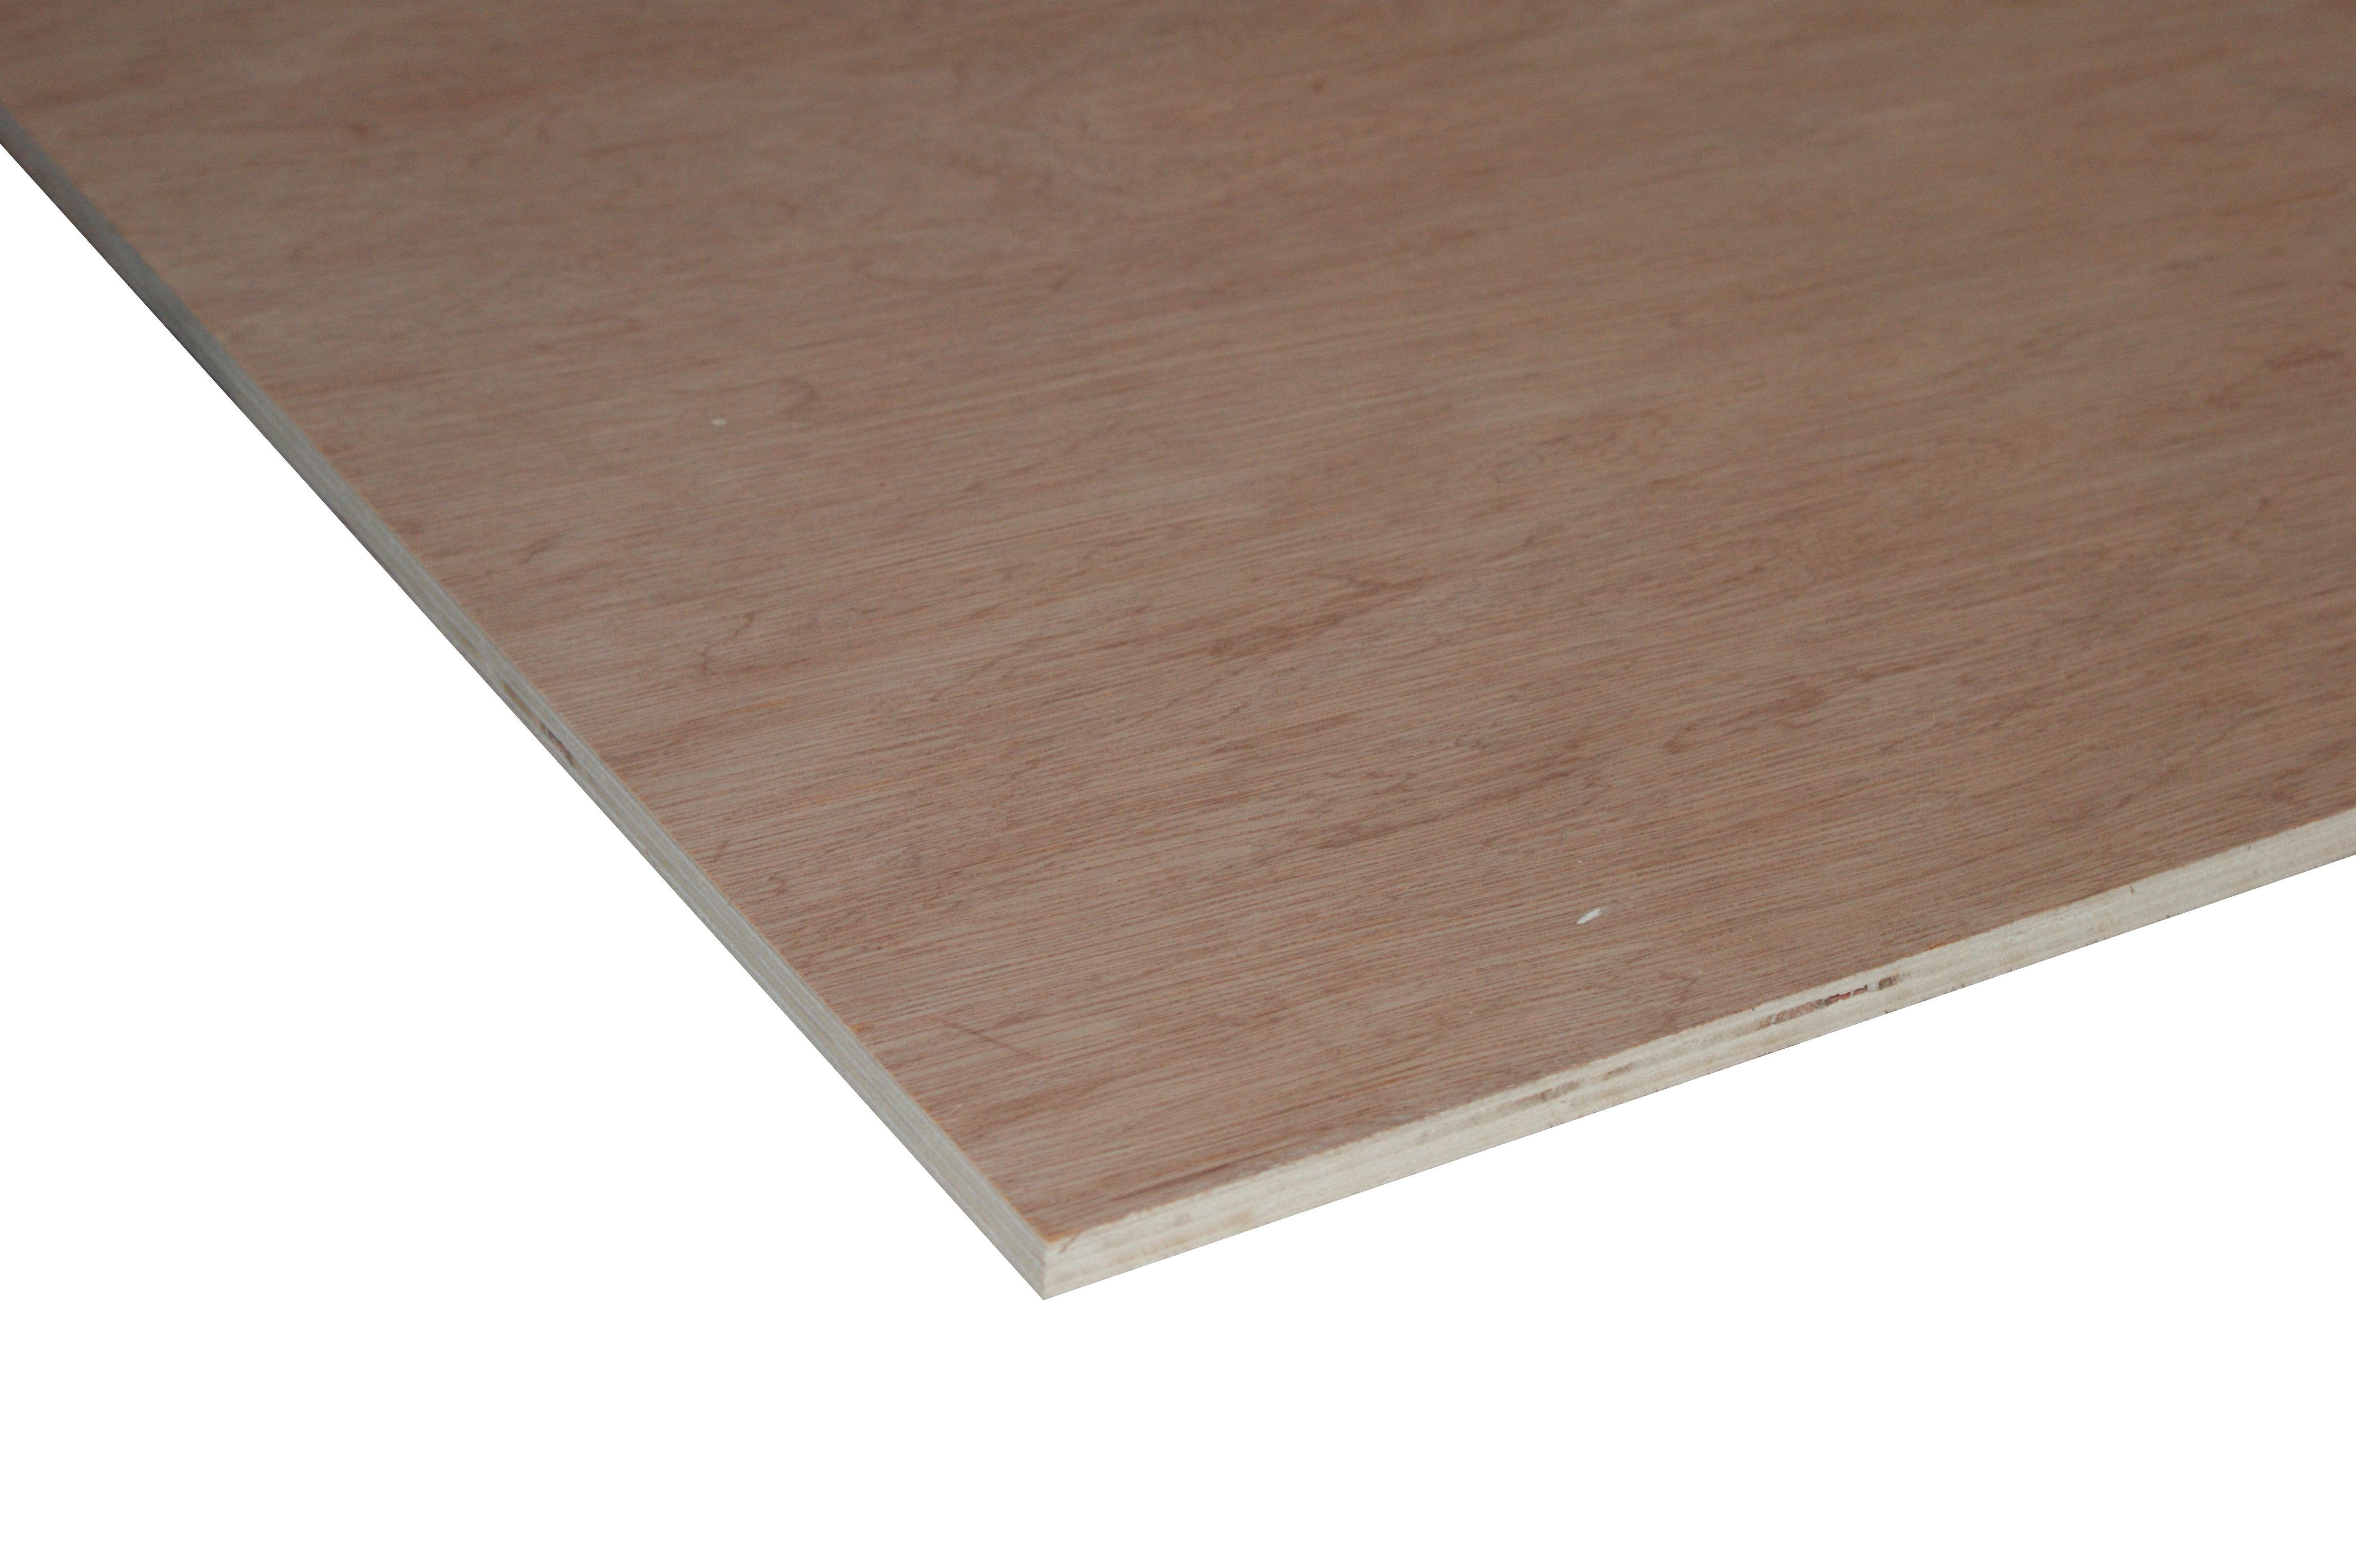 hardwood plywood mouse over image for a closer look. LBZYSUL